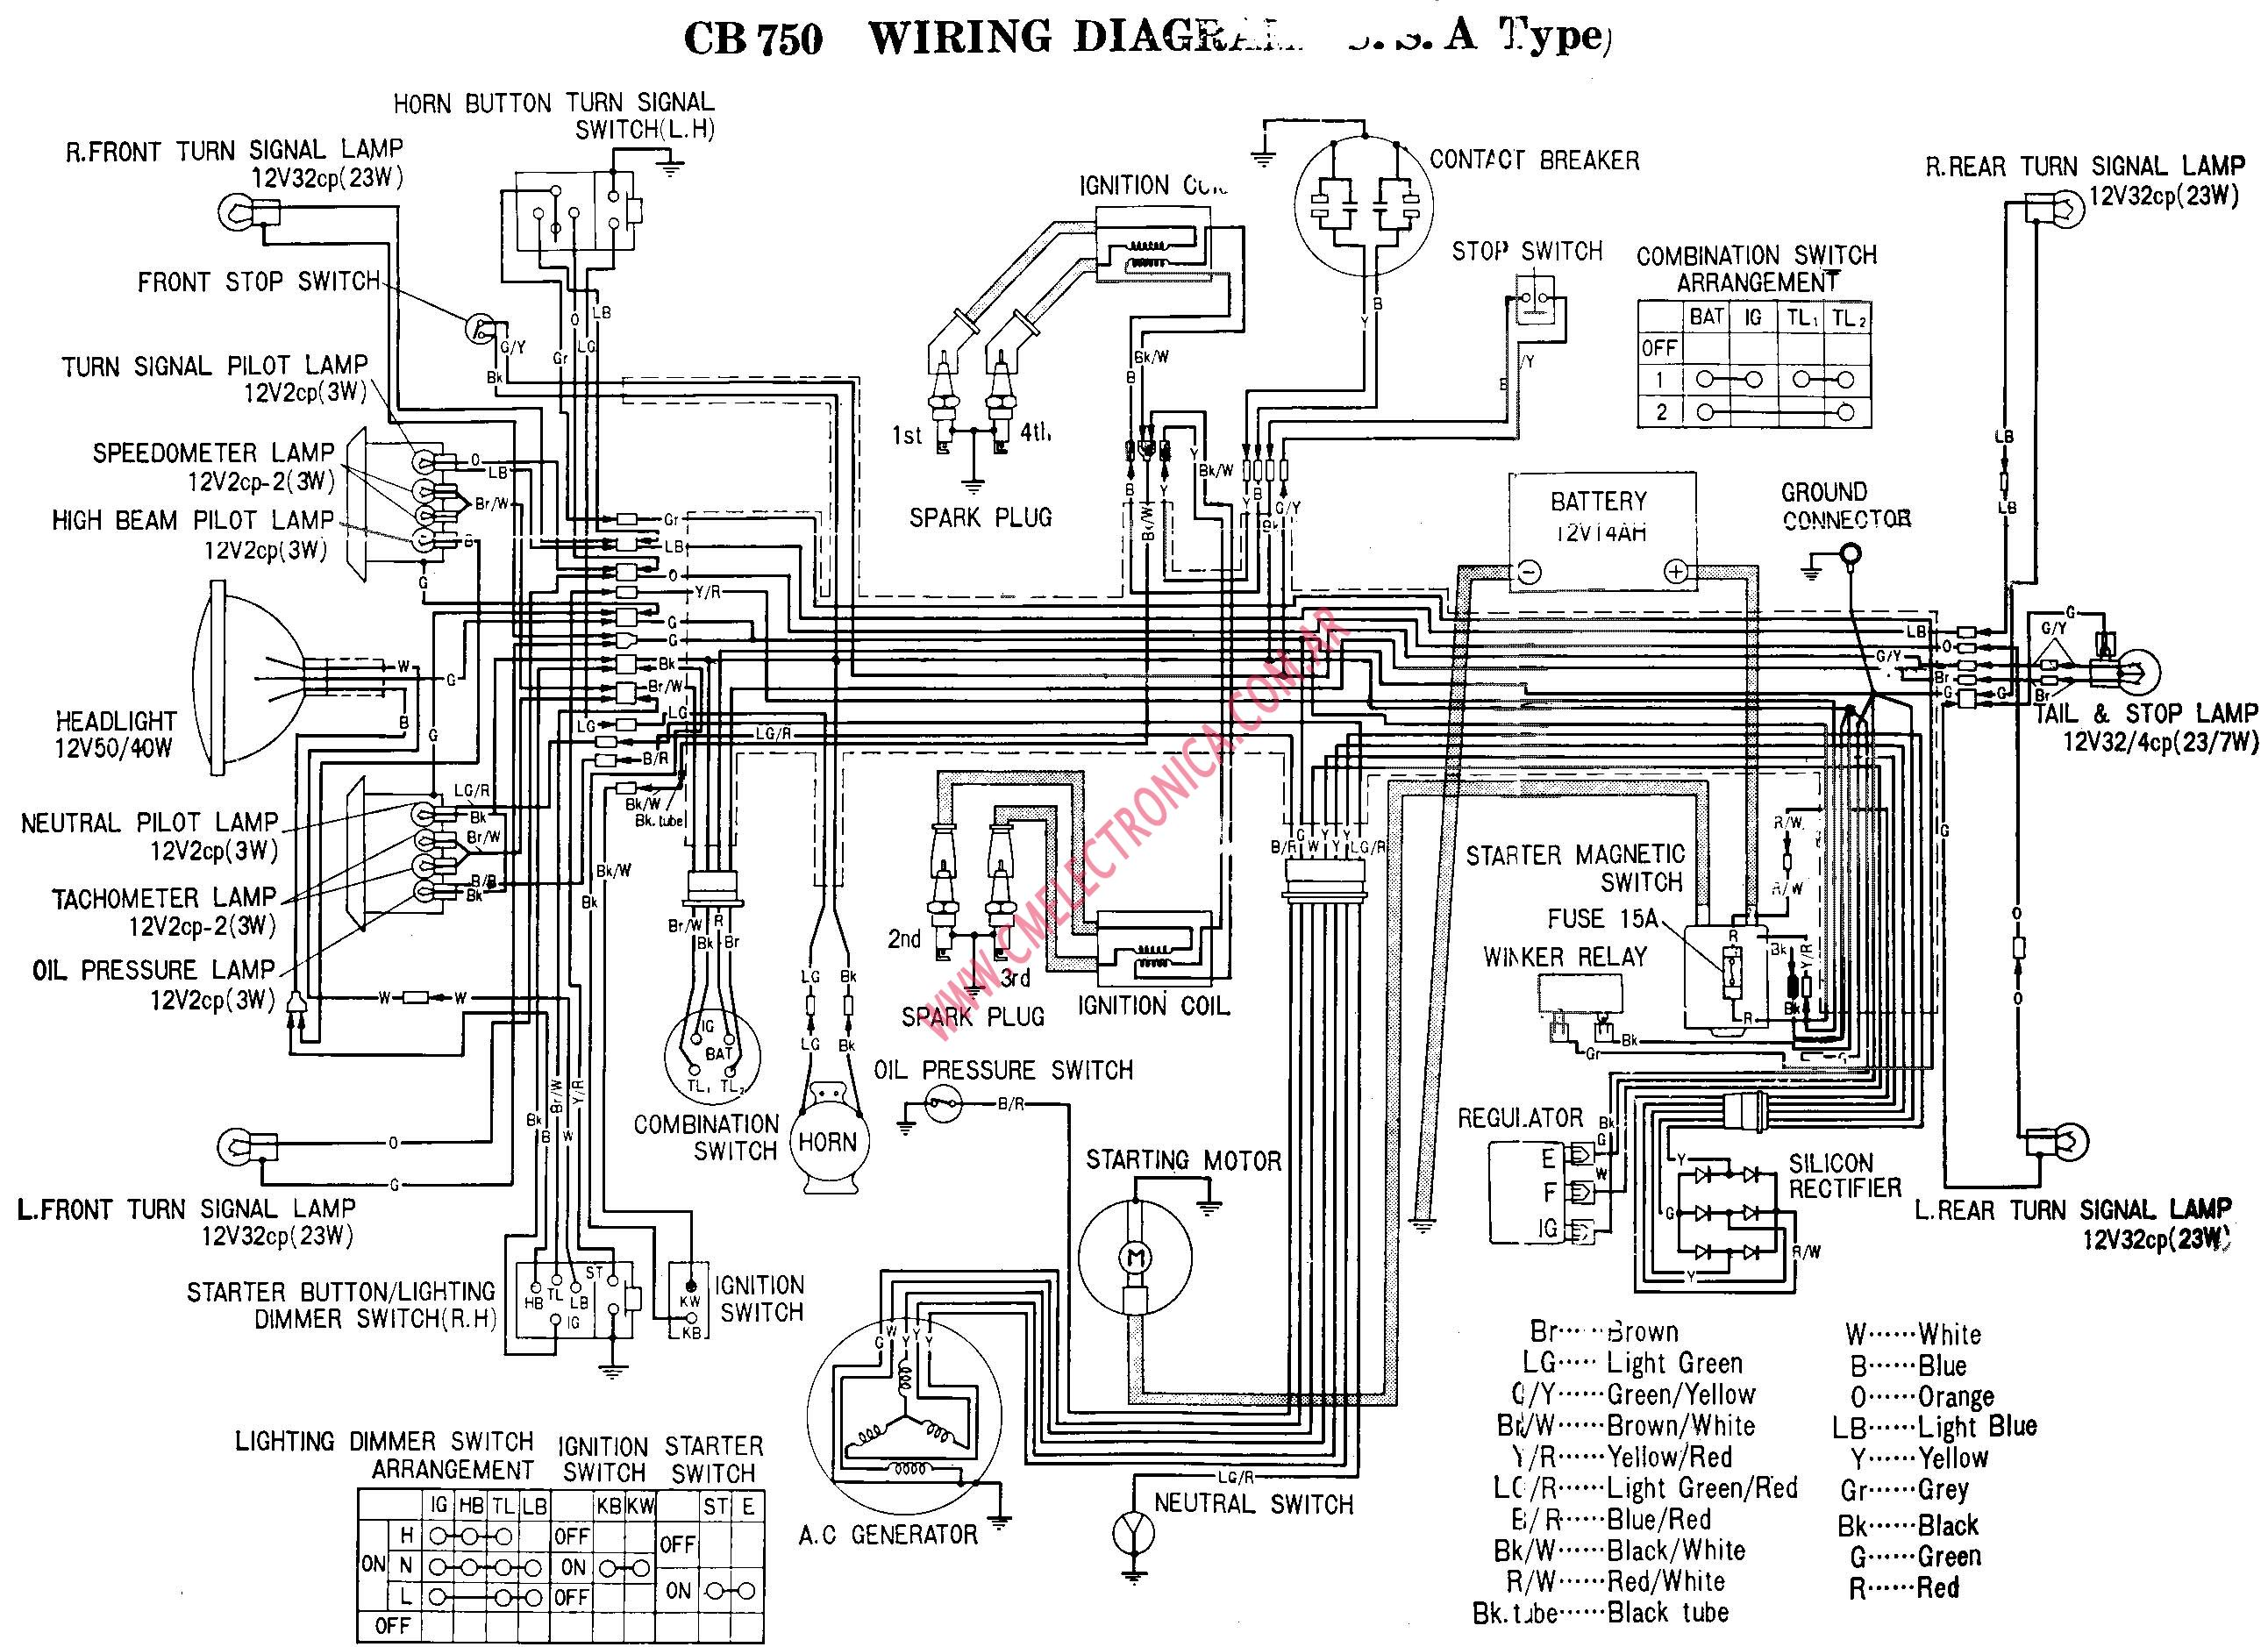 honda rancher wiring schematic honda manual repair wiring and engine 1982 honda shadow 750 wiring diagram